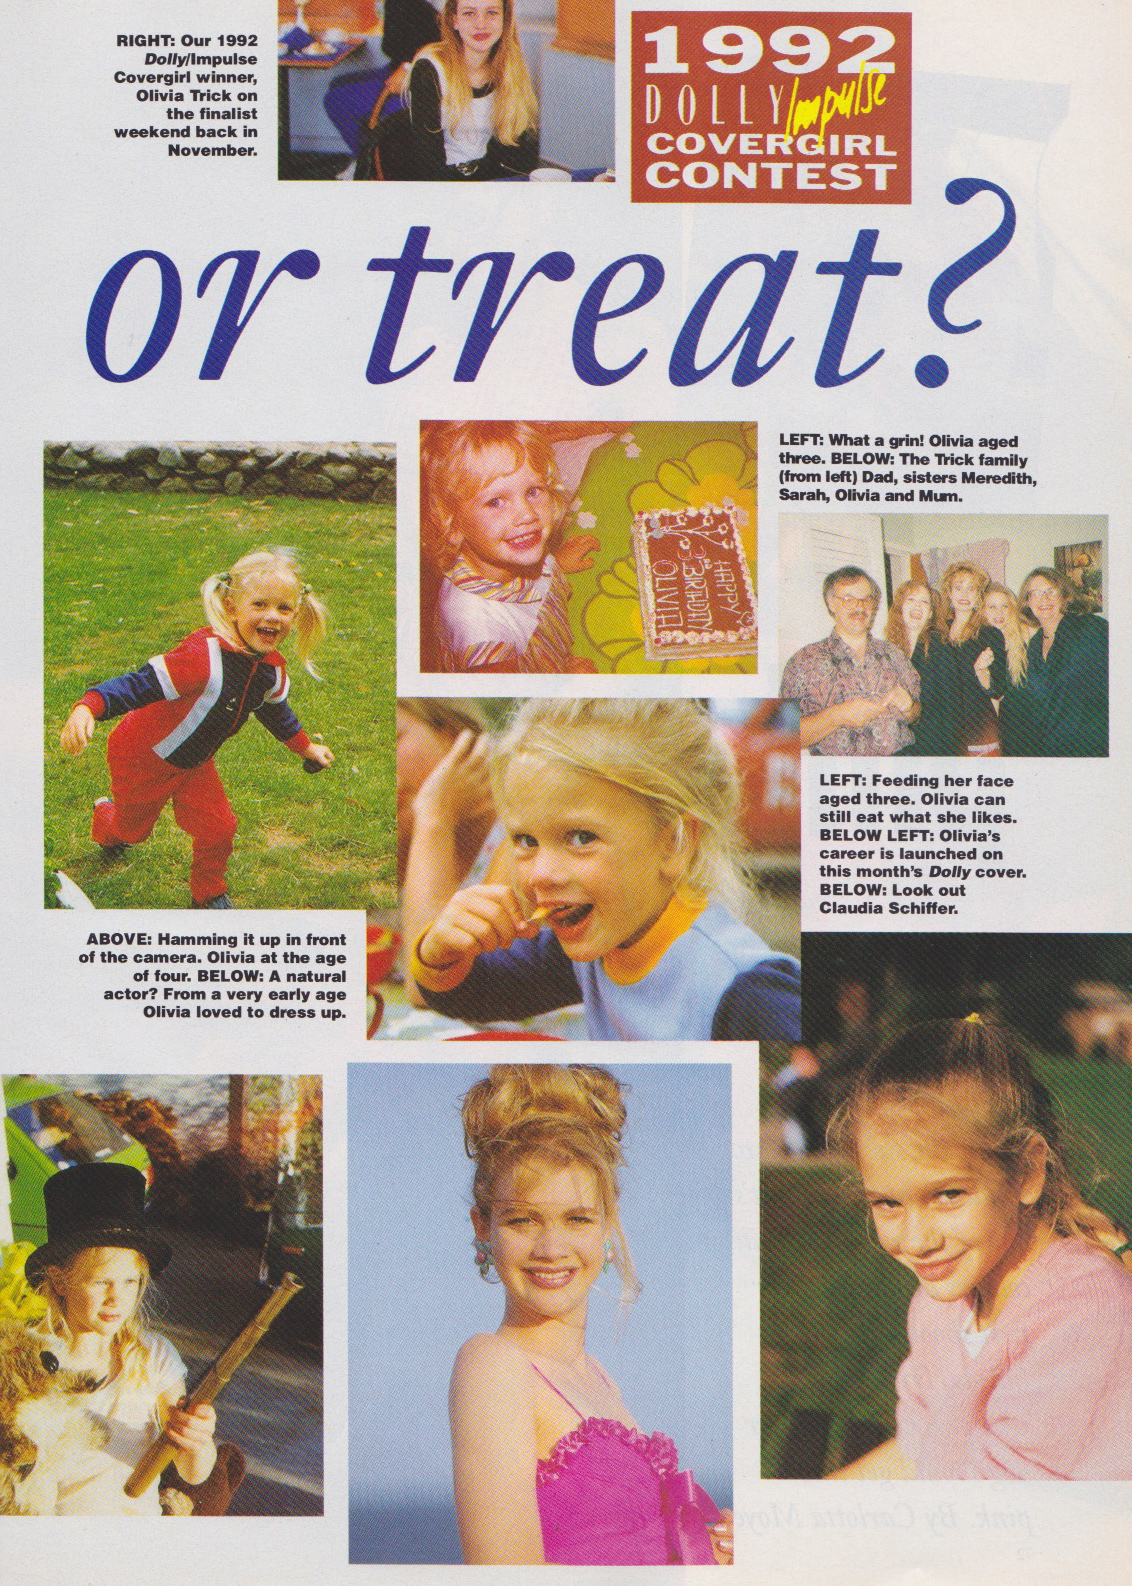 Dolly Covergirl Competition | 1992 Winner Article 02.jpeg